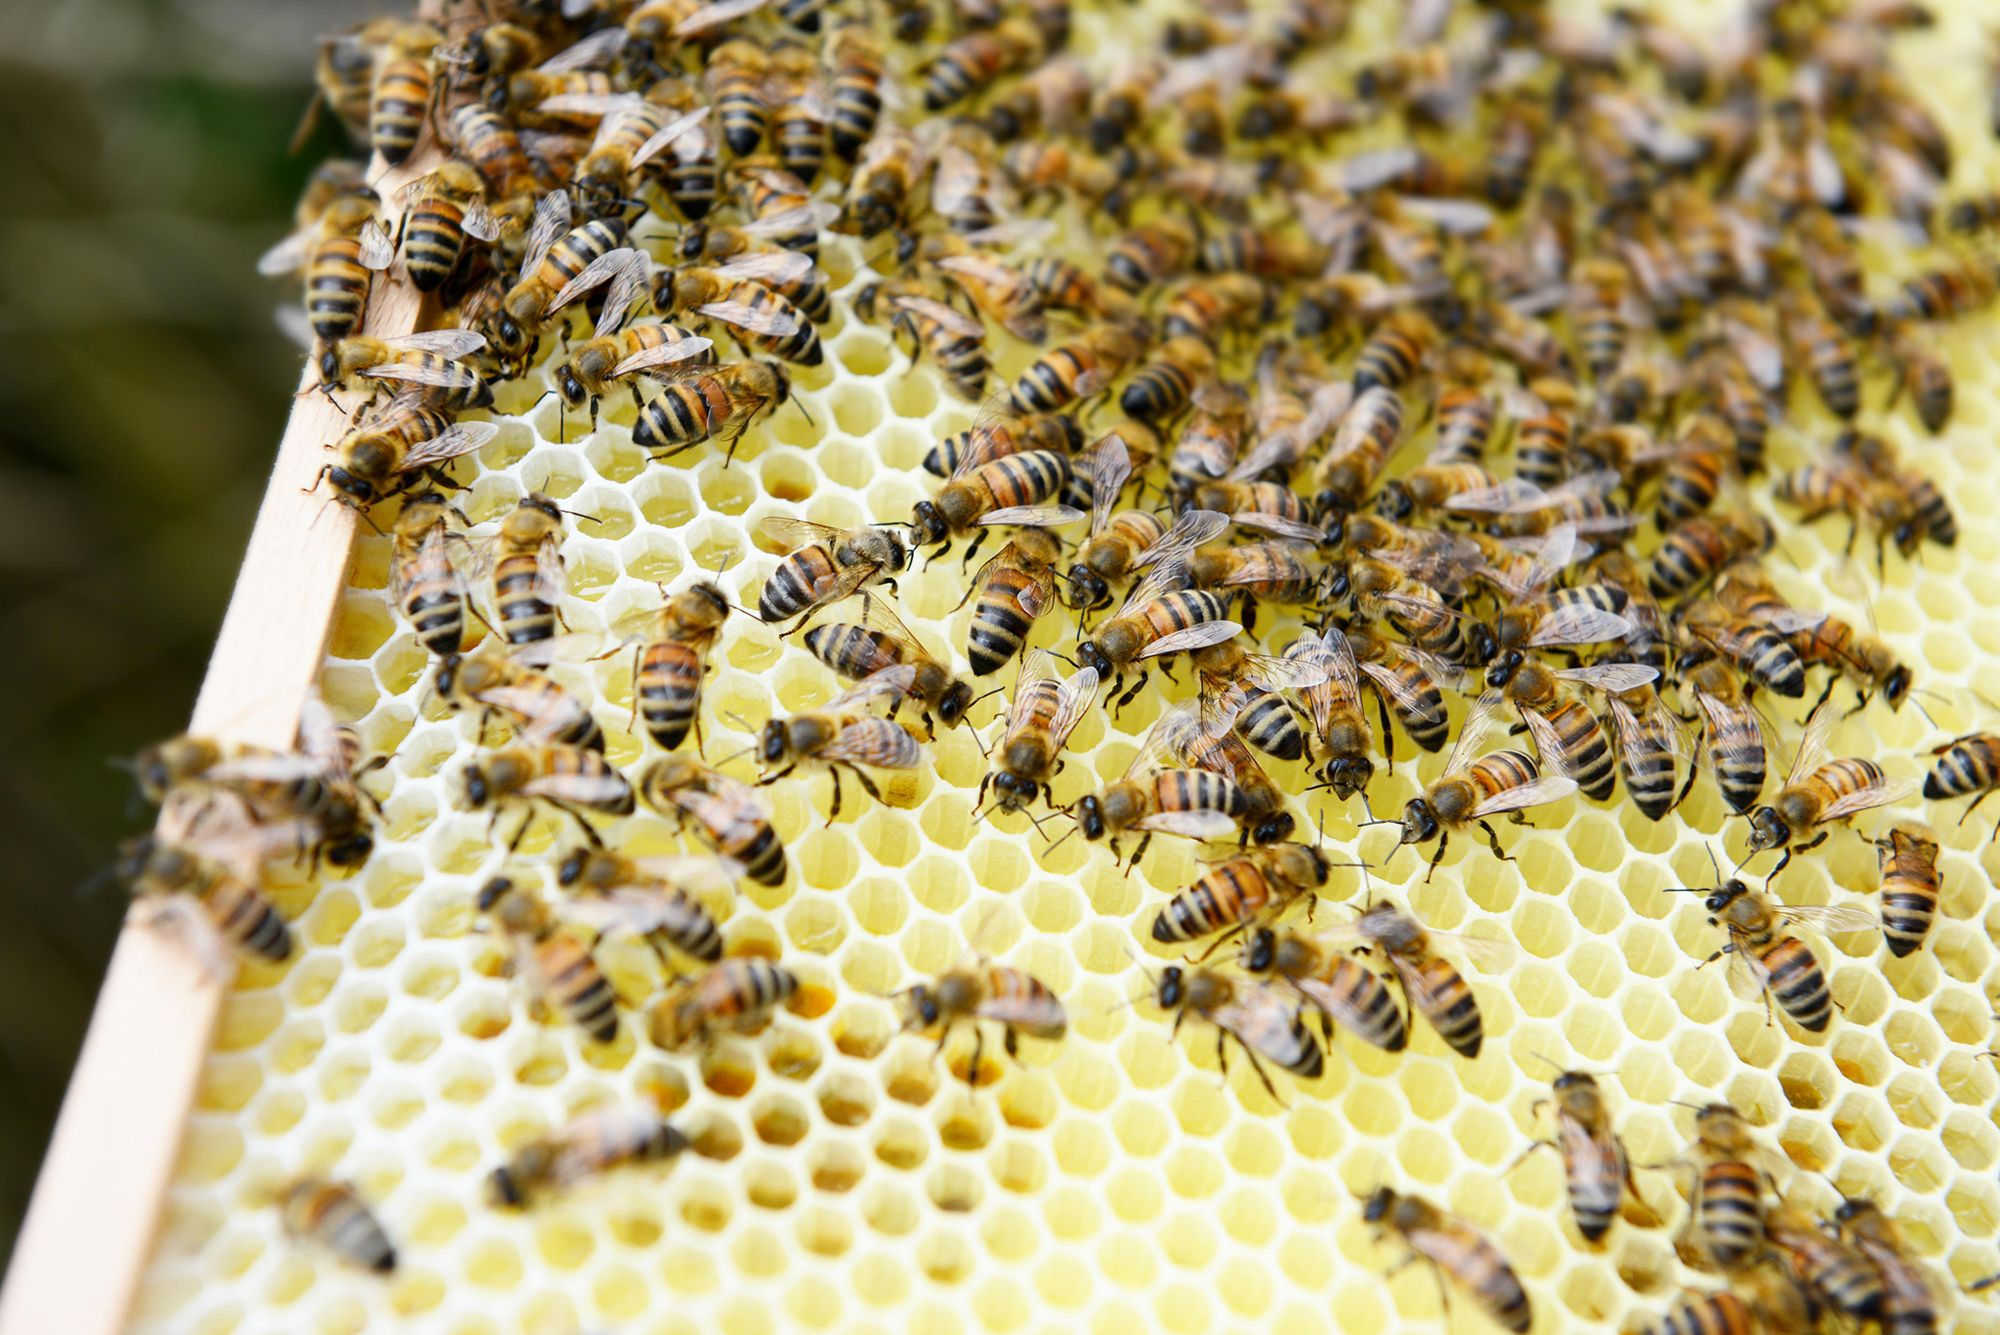 How To Keep Bees Beekeeping Guide